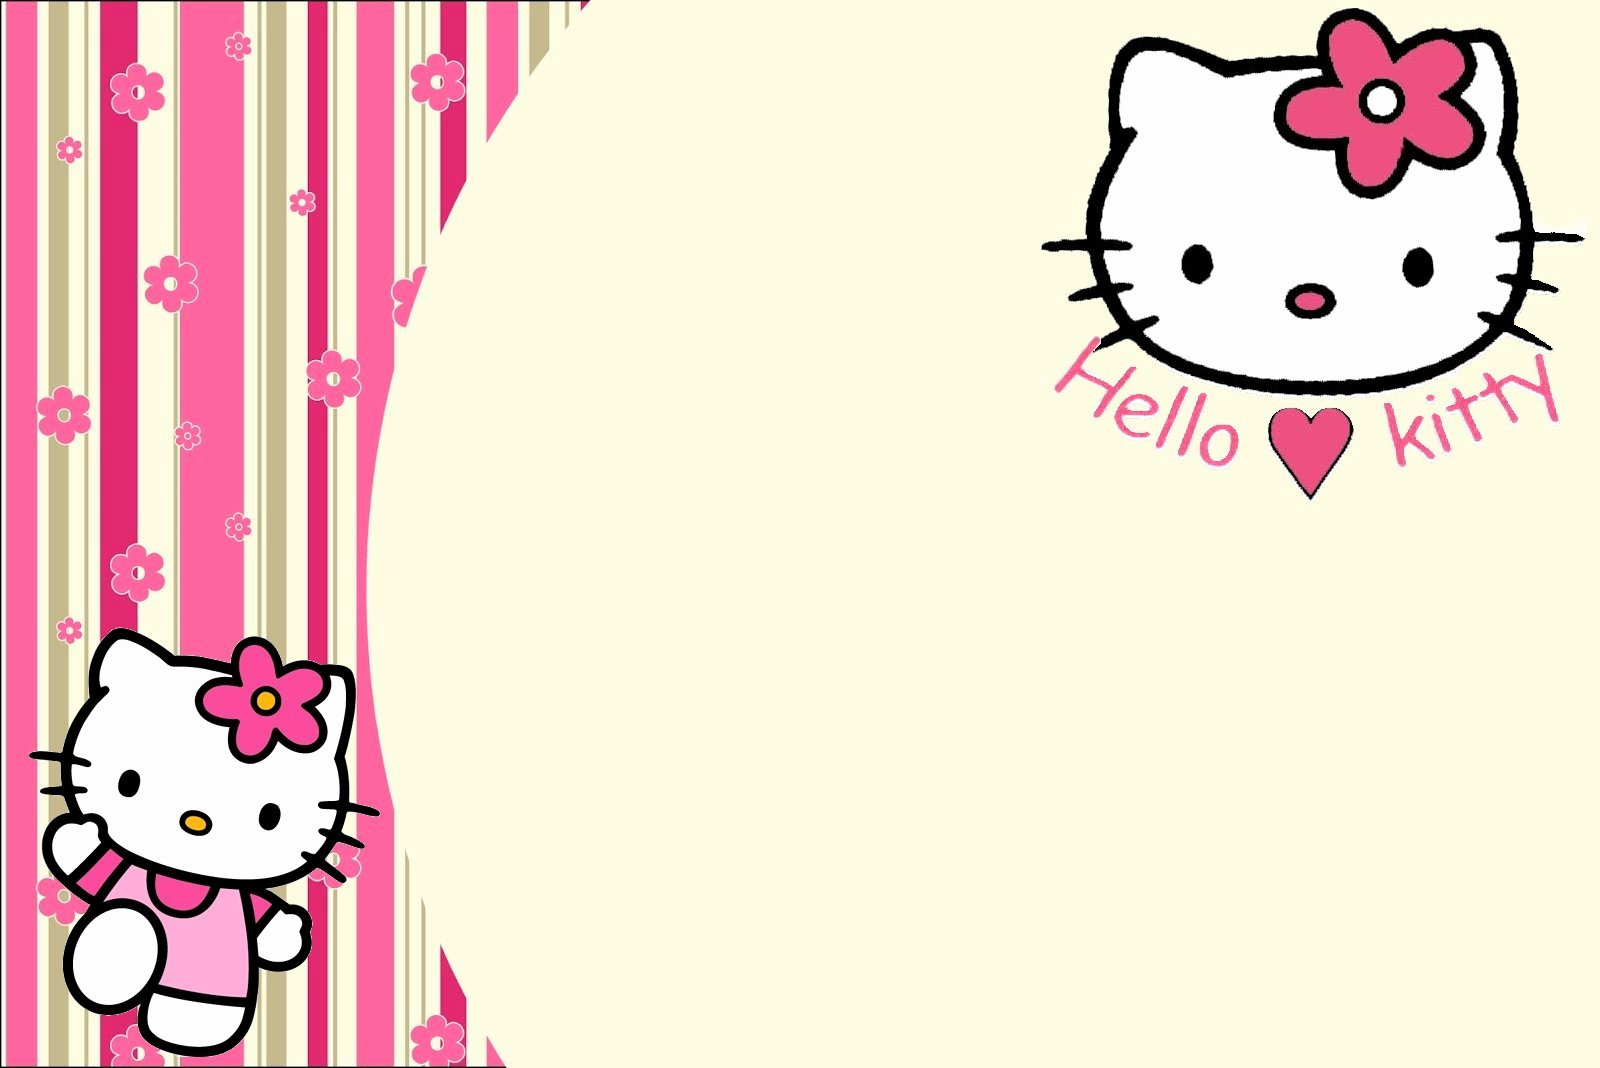 Hello Kitty Invite Templates New Hello Kitty Frame Wallpapers High Quality